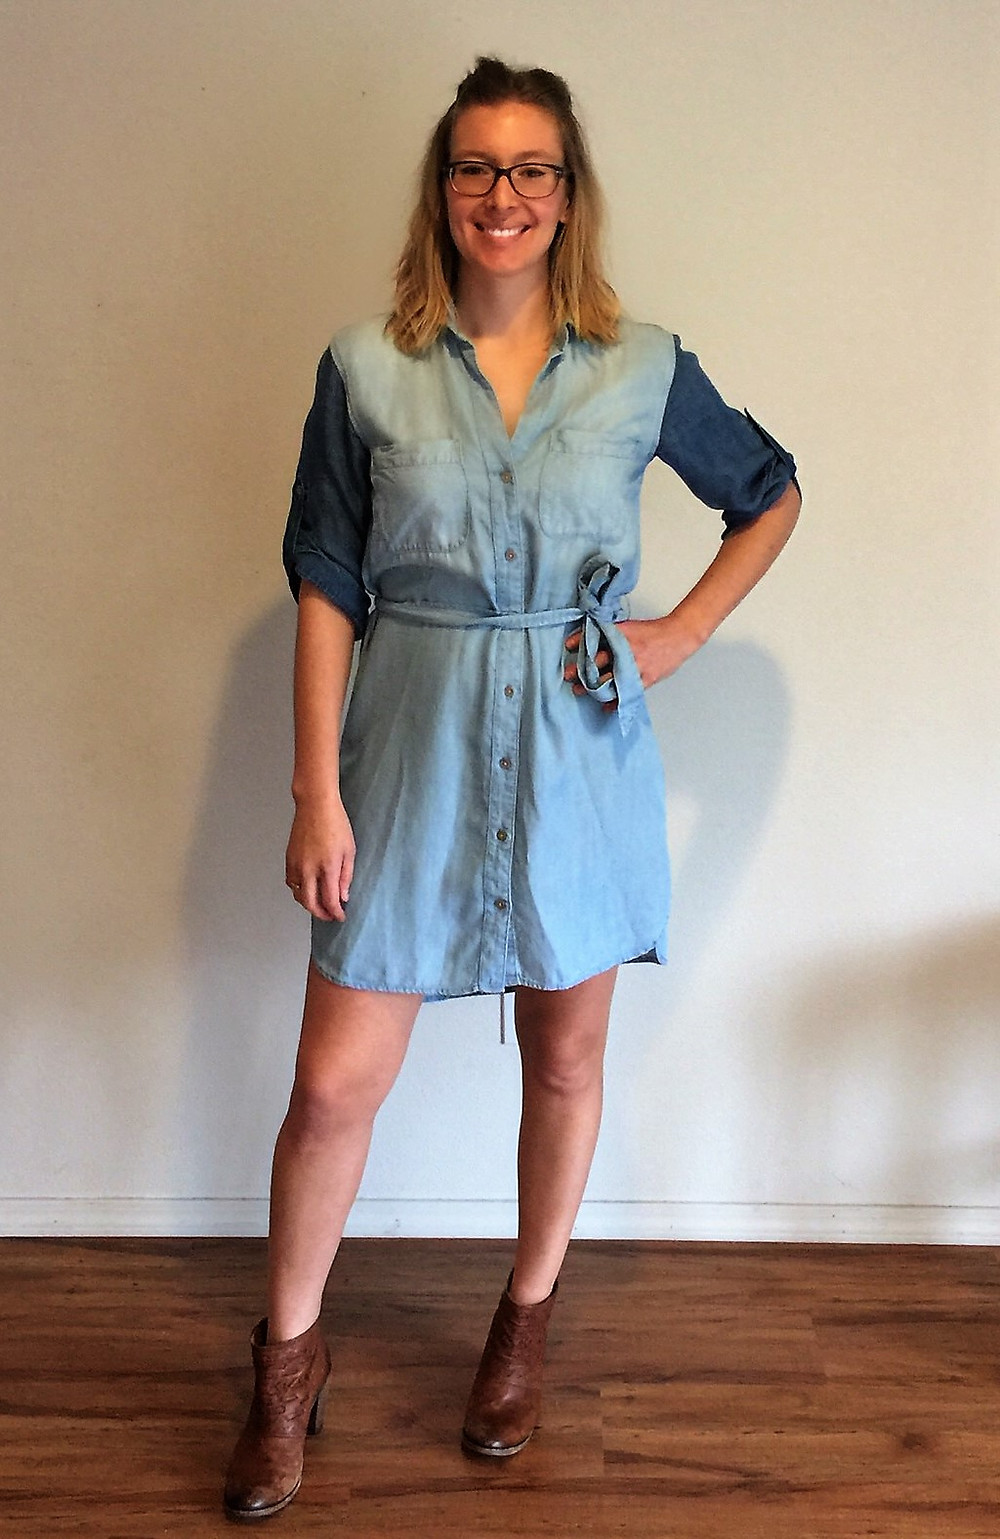 Maria wearing denim dress with booties